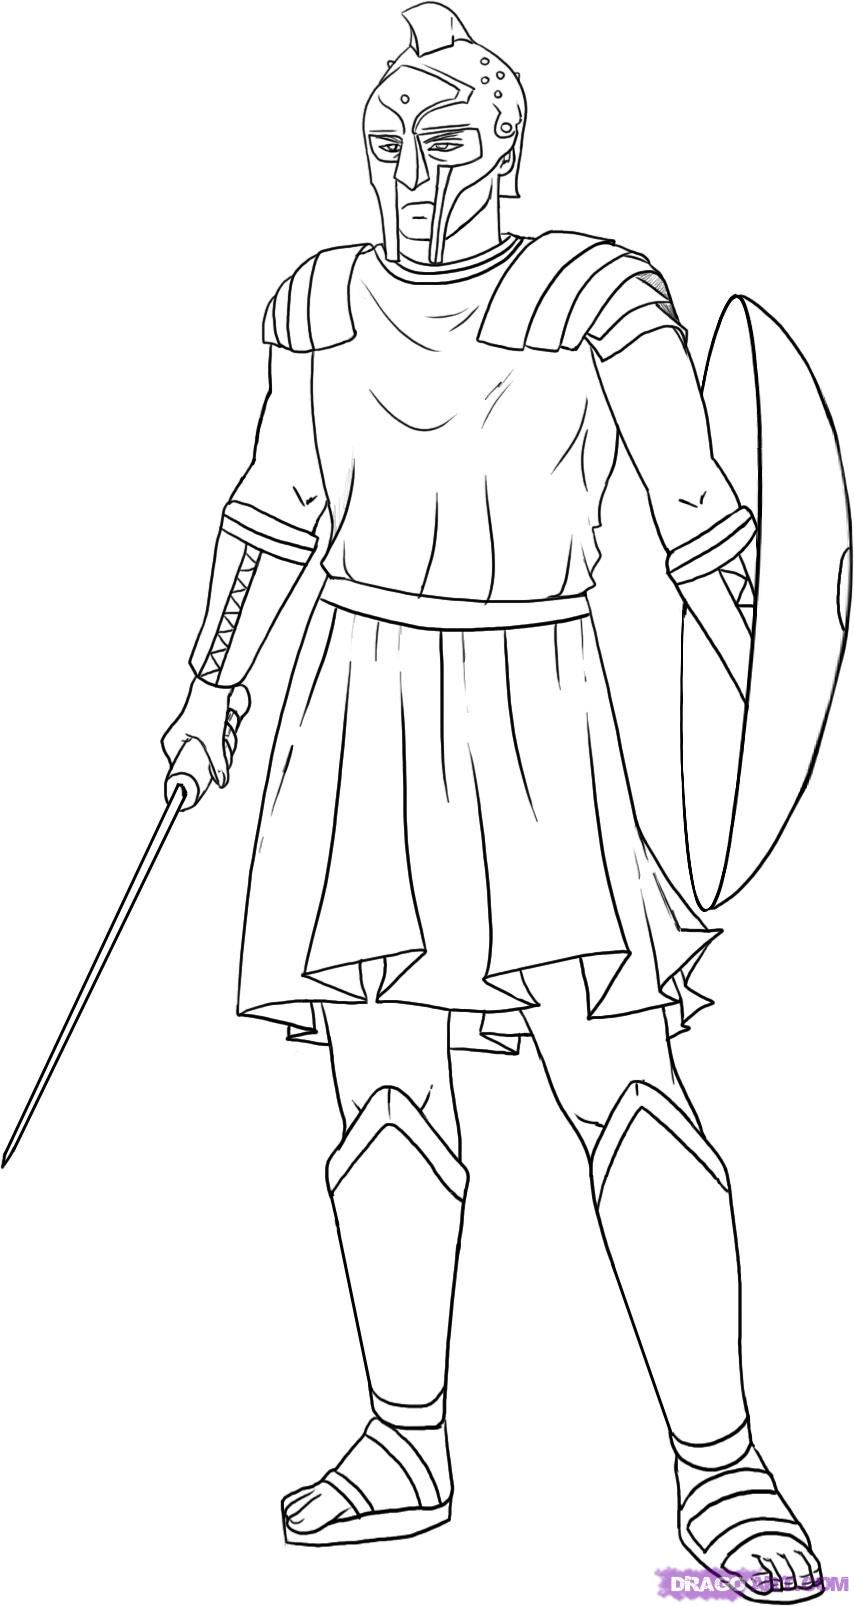 Coloring Pages Roman Soldier Coloring Page roman soldier coloring page futpal com futpal